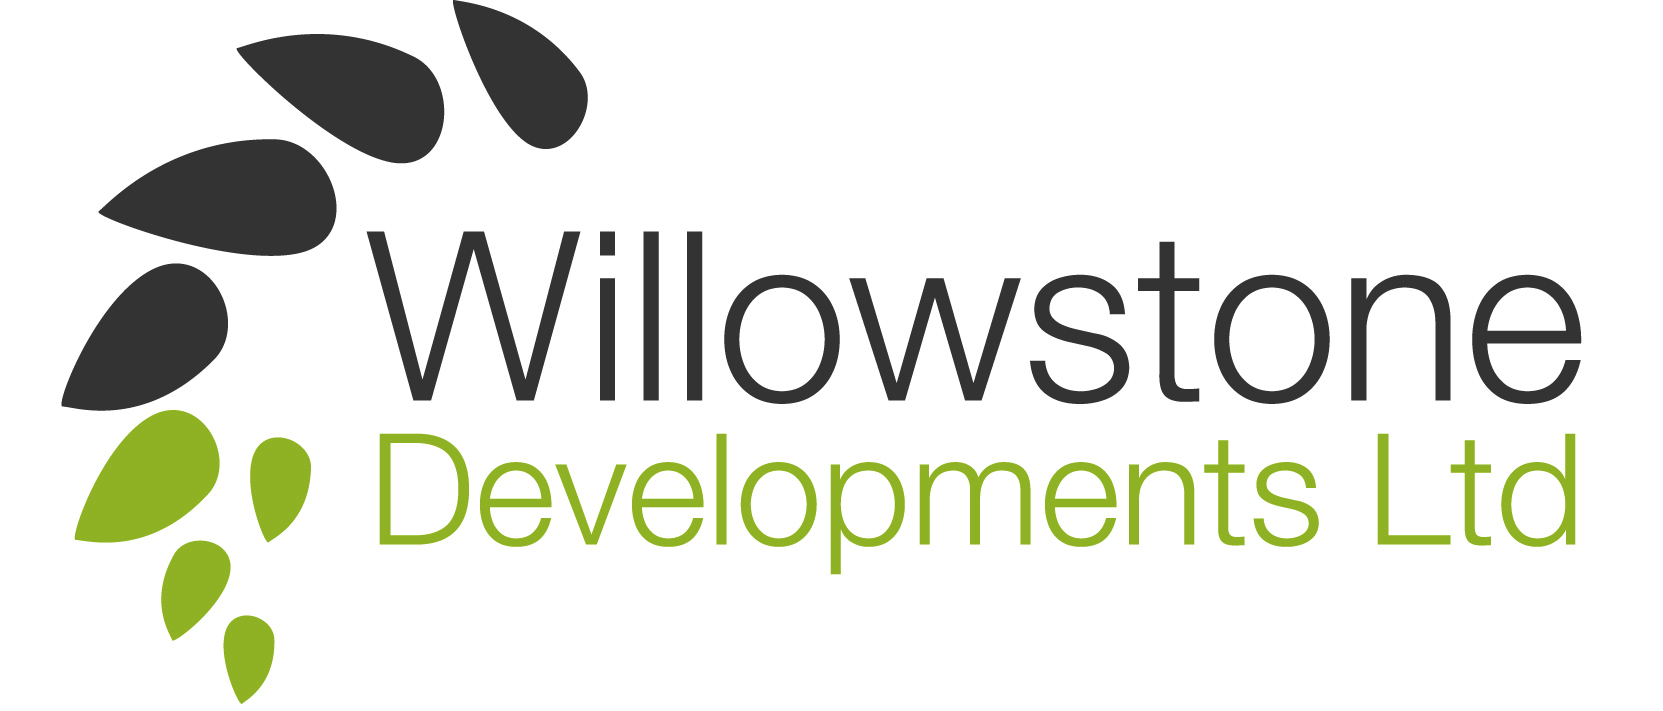 Builder, Burton, Willowstone Developments Ltd